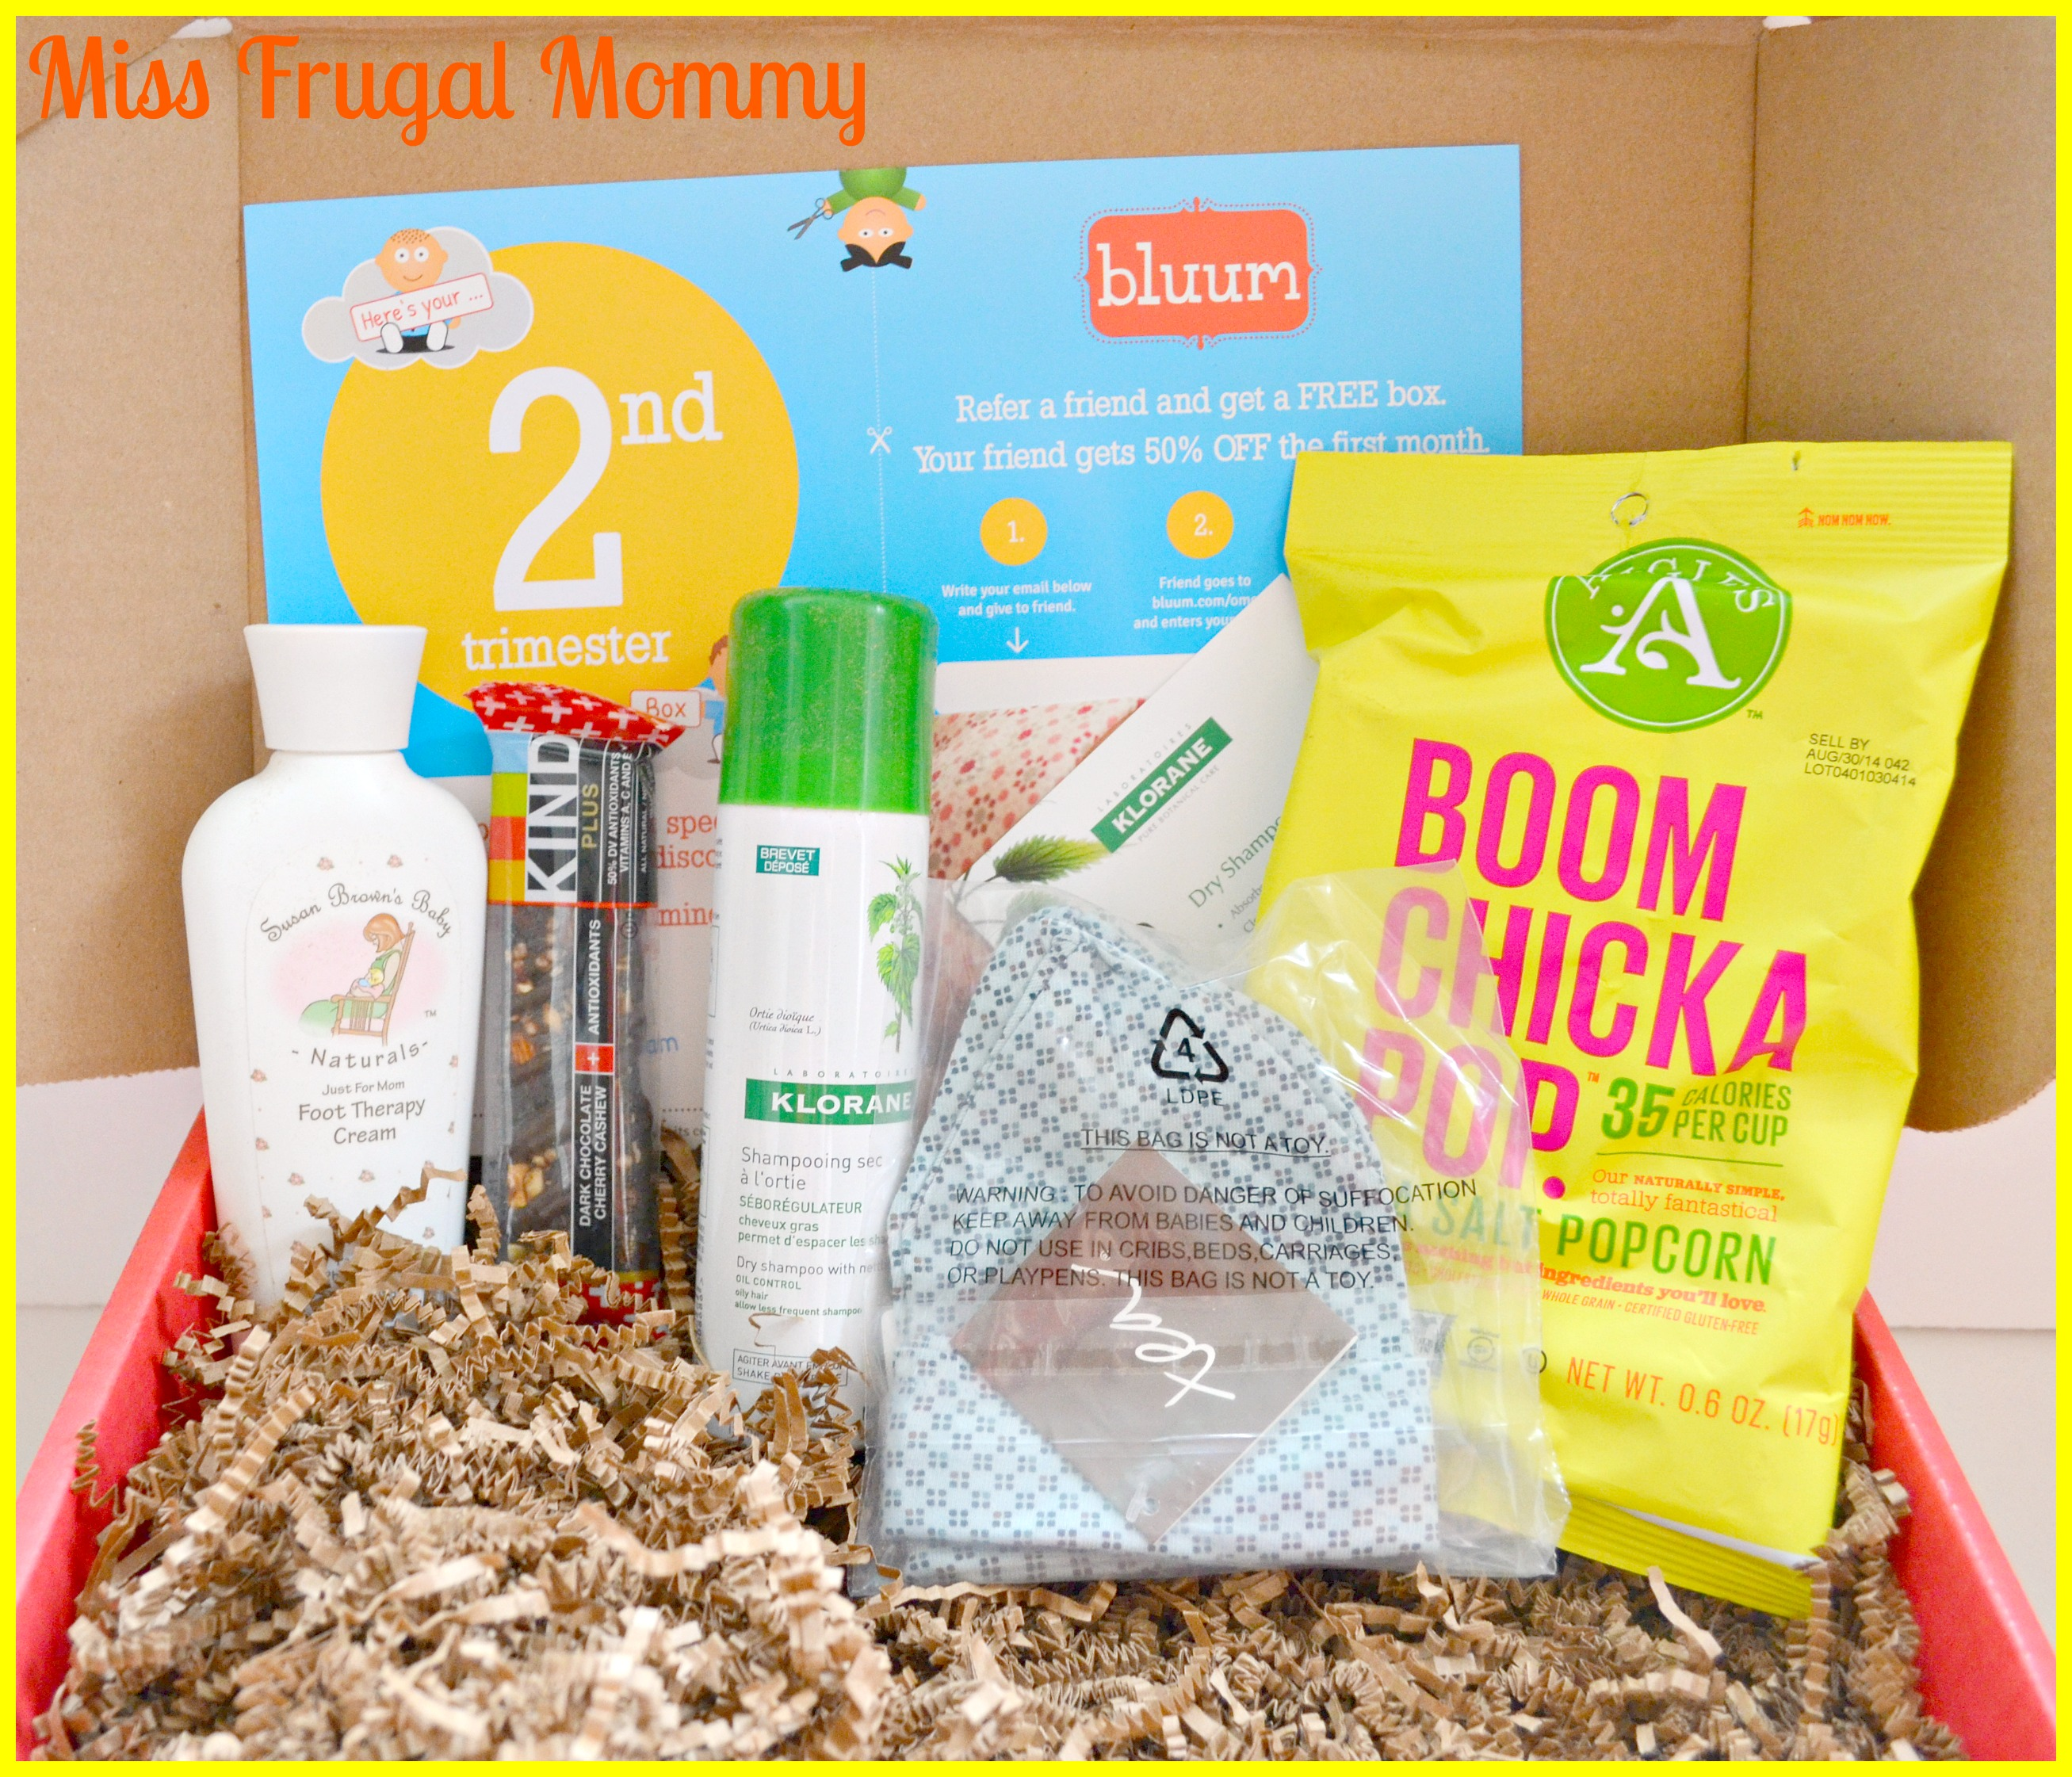 Sleek Bluum Subscription From Pregnancy To Preschool Ready Babygift Bluum Subscription From Pregnancy To Preschool Ready Baby Subscription Box Gap Baby Subscription Box Europe baby Baby Subscription Box